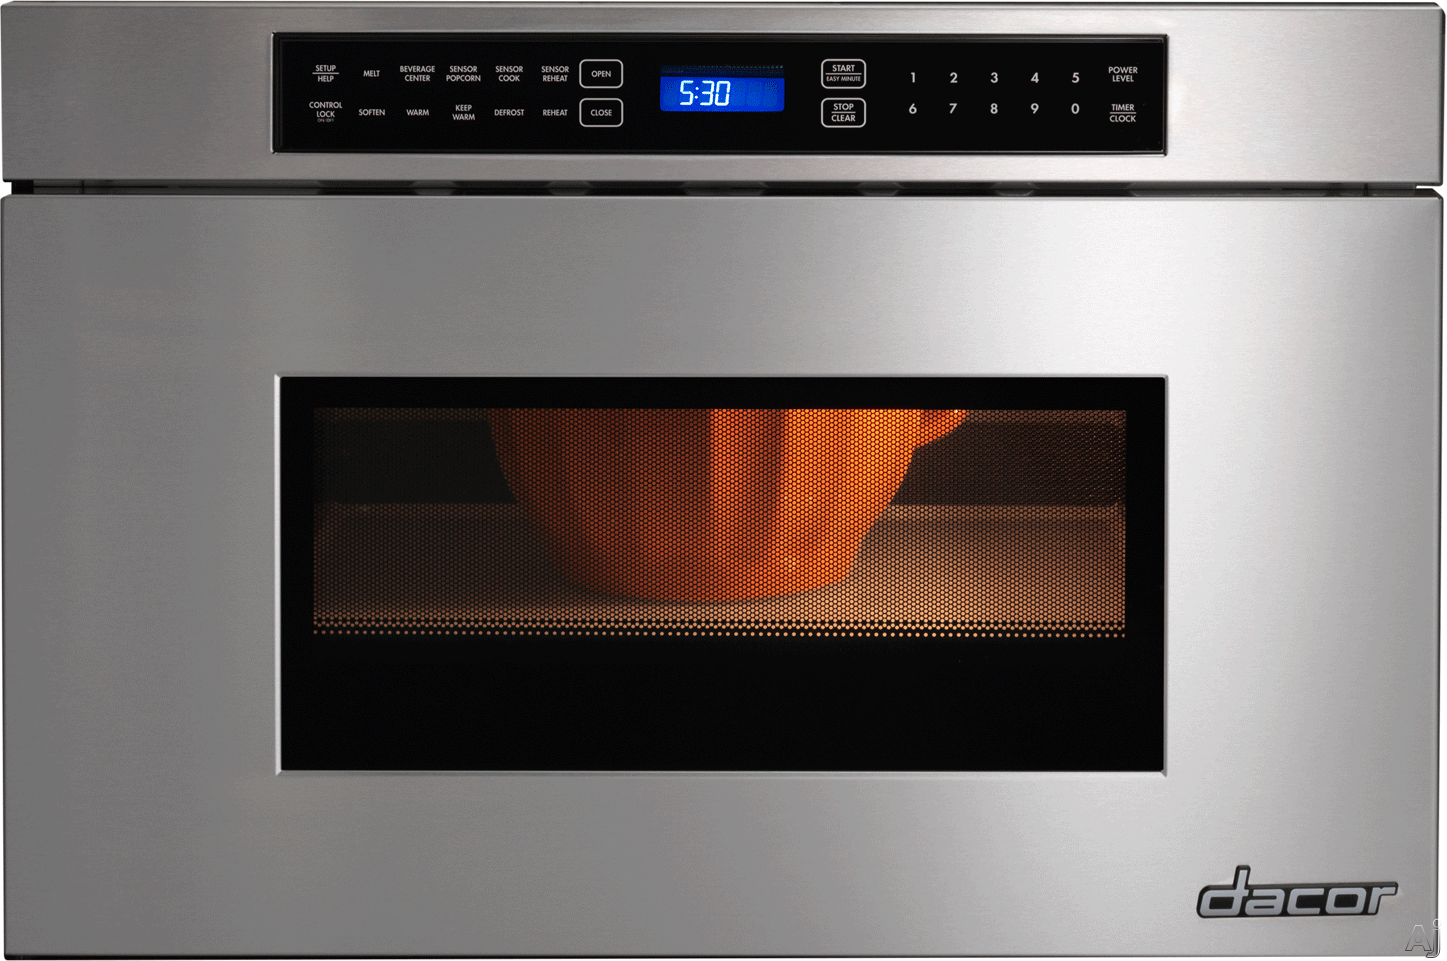 Dacor Renaissance RNMD24 24 Inch Microwave Drawer with 950 Watts, Automatic Drawer Opening, Beverage Center, 4 Automatic Cooking Sequences, Keep Warm Setting and Control Lock